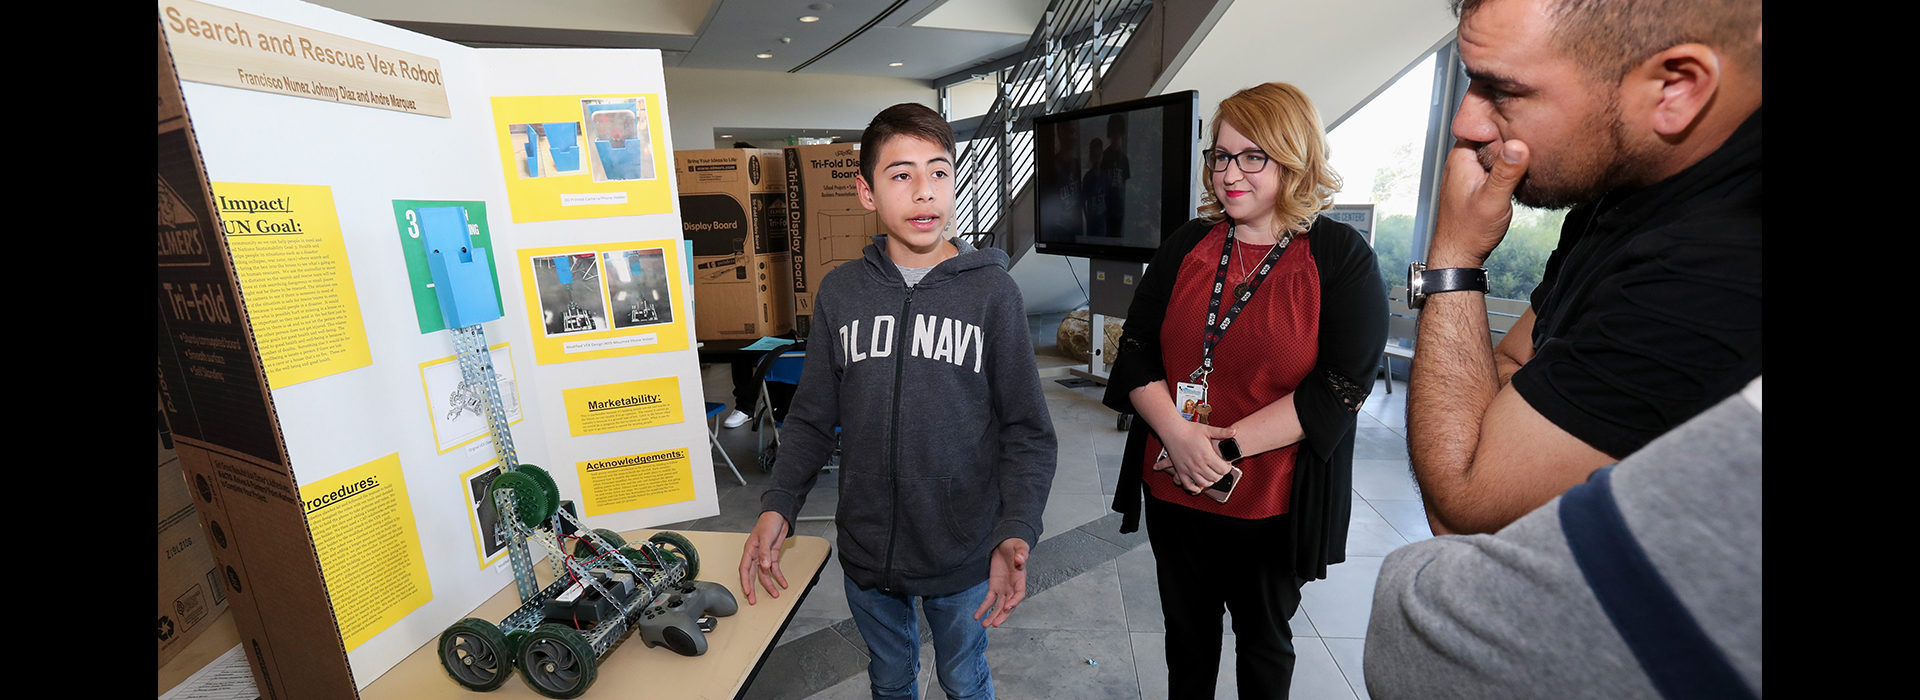 Middle school students present projects as part of third annual Makers Fair, part of the Verizon Innovative Learning Program